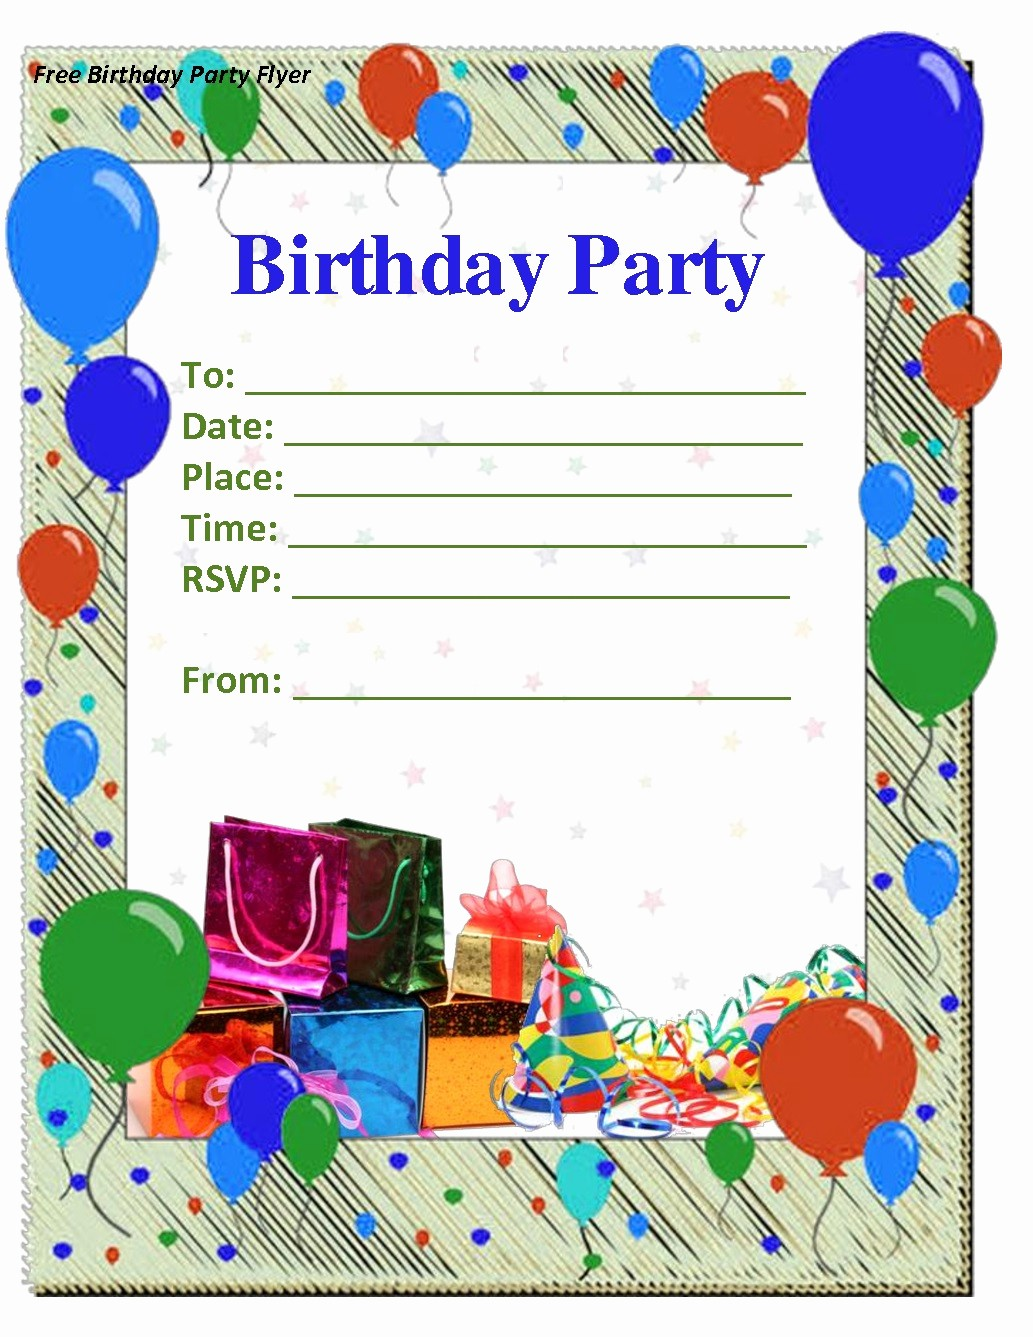 Birthday Party Invitation Card Template Inspirational 50 Free Birthday Invitation Templates – You Will Love